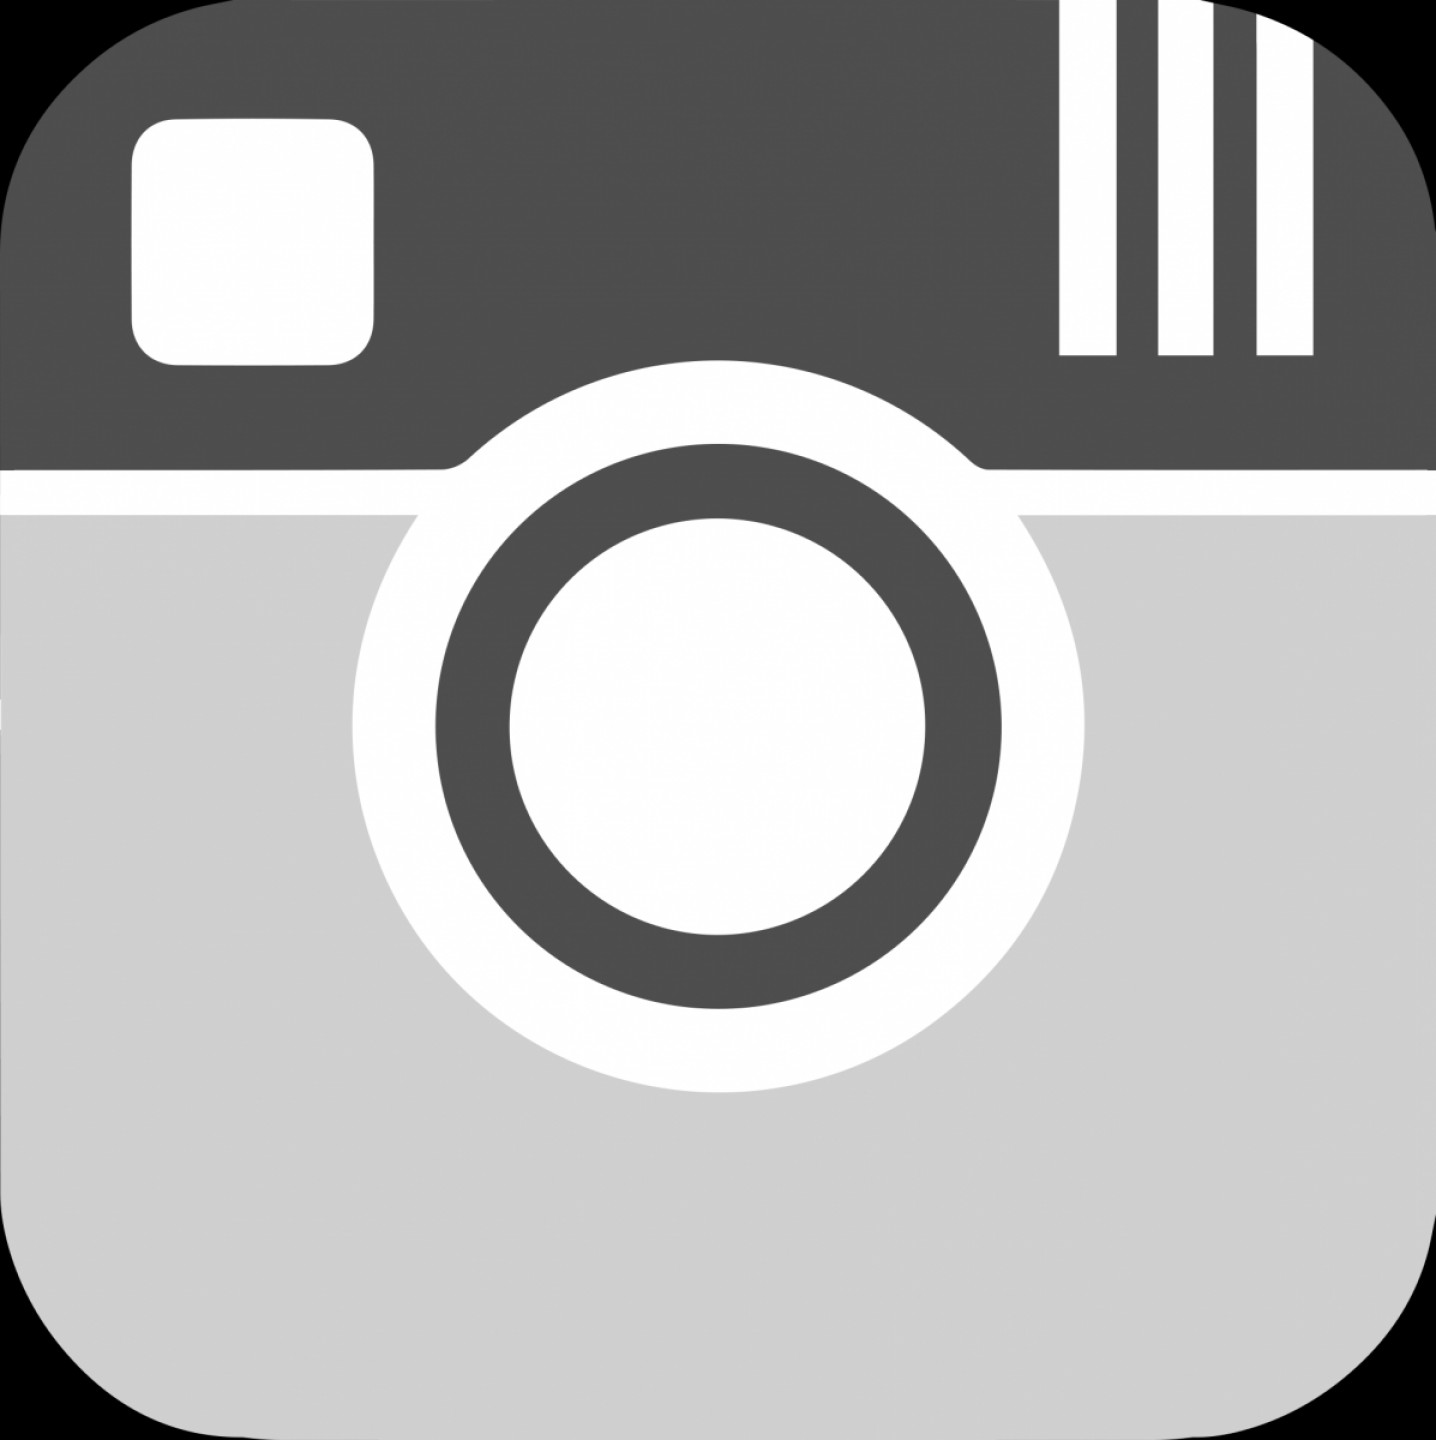 Official Instagram Icon Vector: Breathtaking Instagram Logo Vector Black And White With Additional Logo Designer With Instagram Logo Vector Black And White